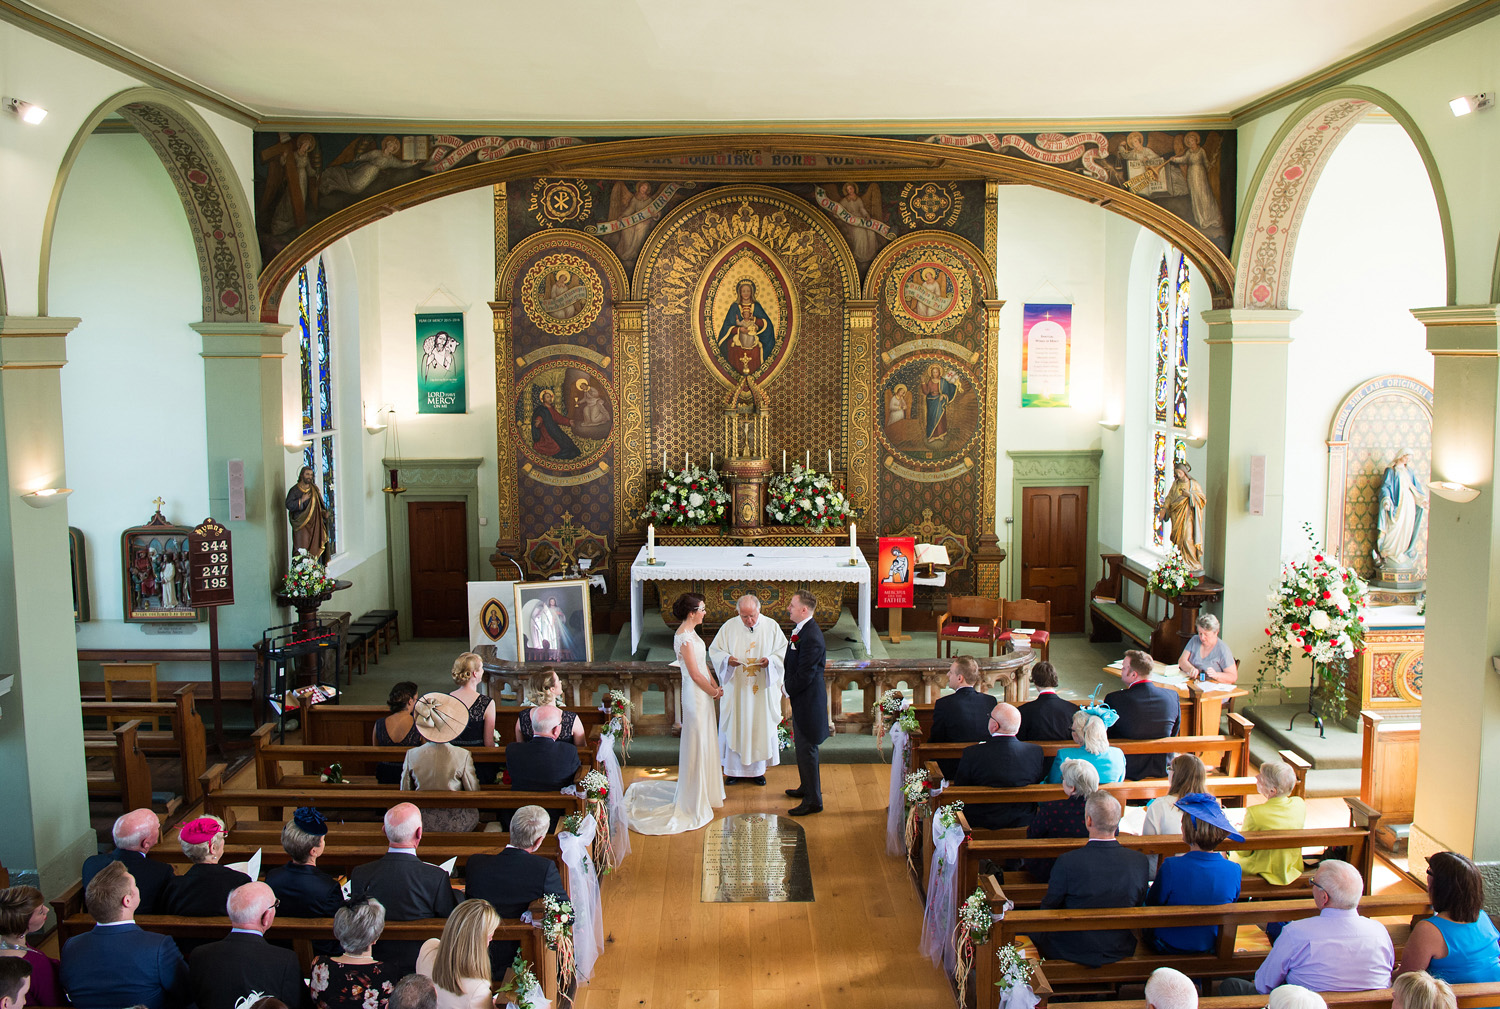 Photographs of a wedding service at St. Mary's Church Fernyhalgh